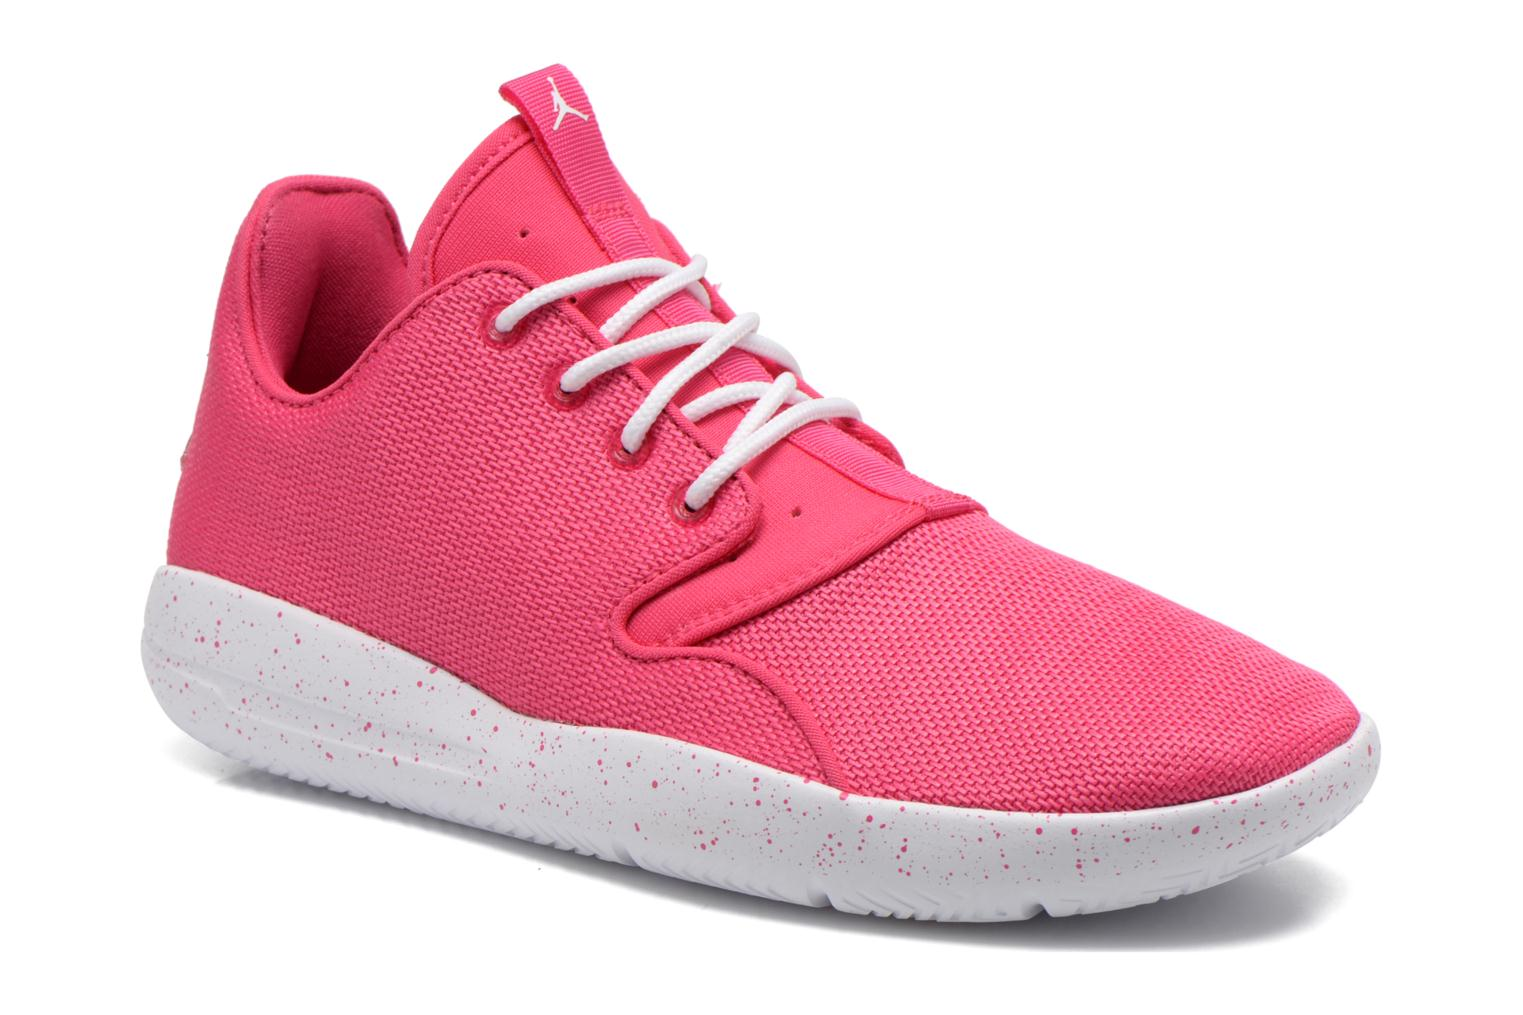 Baskets Jordan Jordan Eclipse Gg Rose vue détail/paire